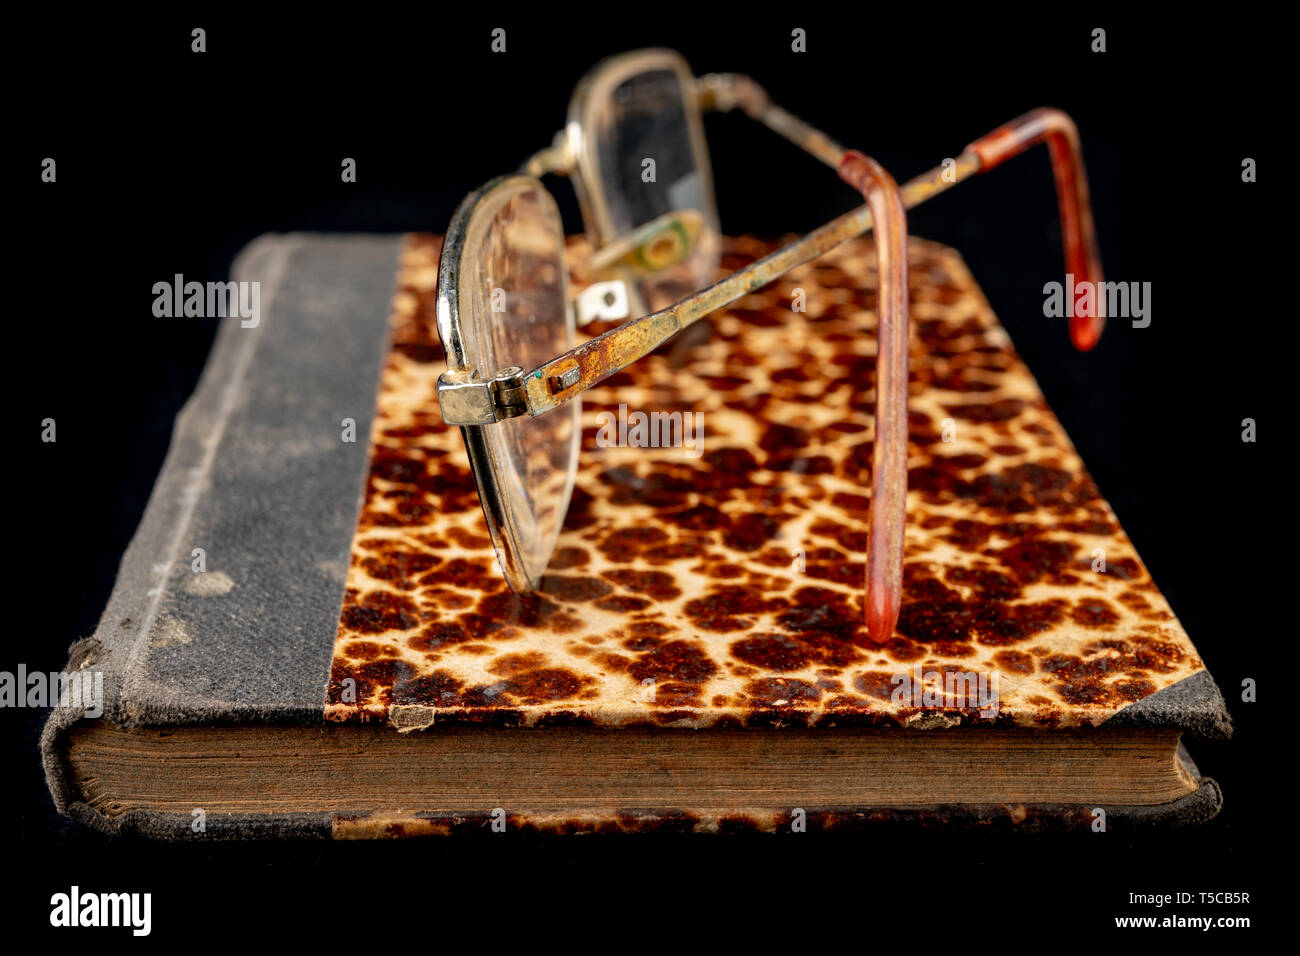 Old book and glasses on a dark wooden table. Forgotten publishing in binding from several decades ago. Black background. - Stock Image